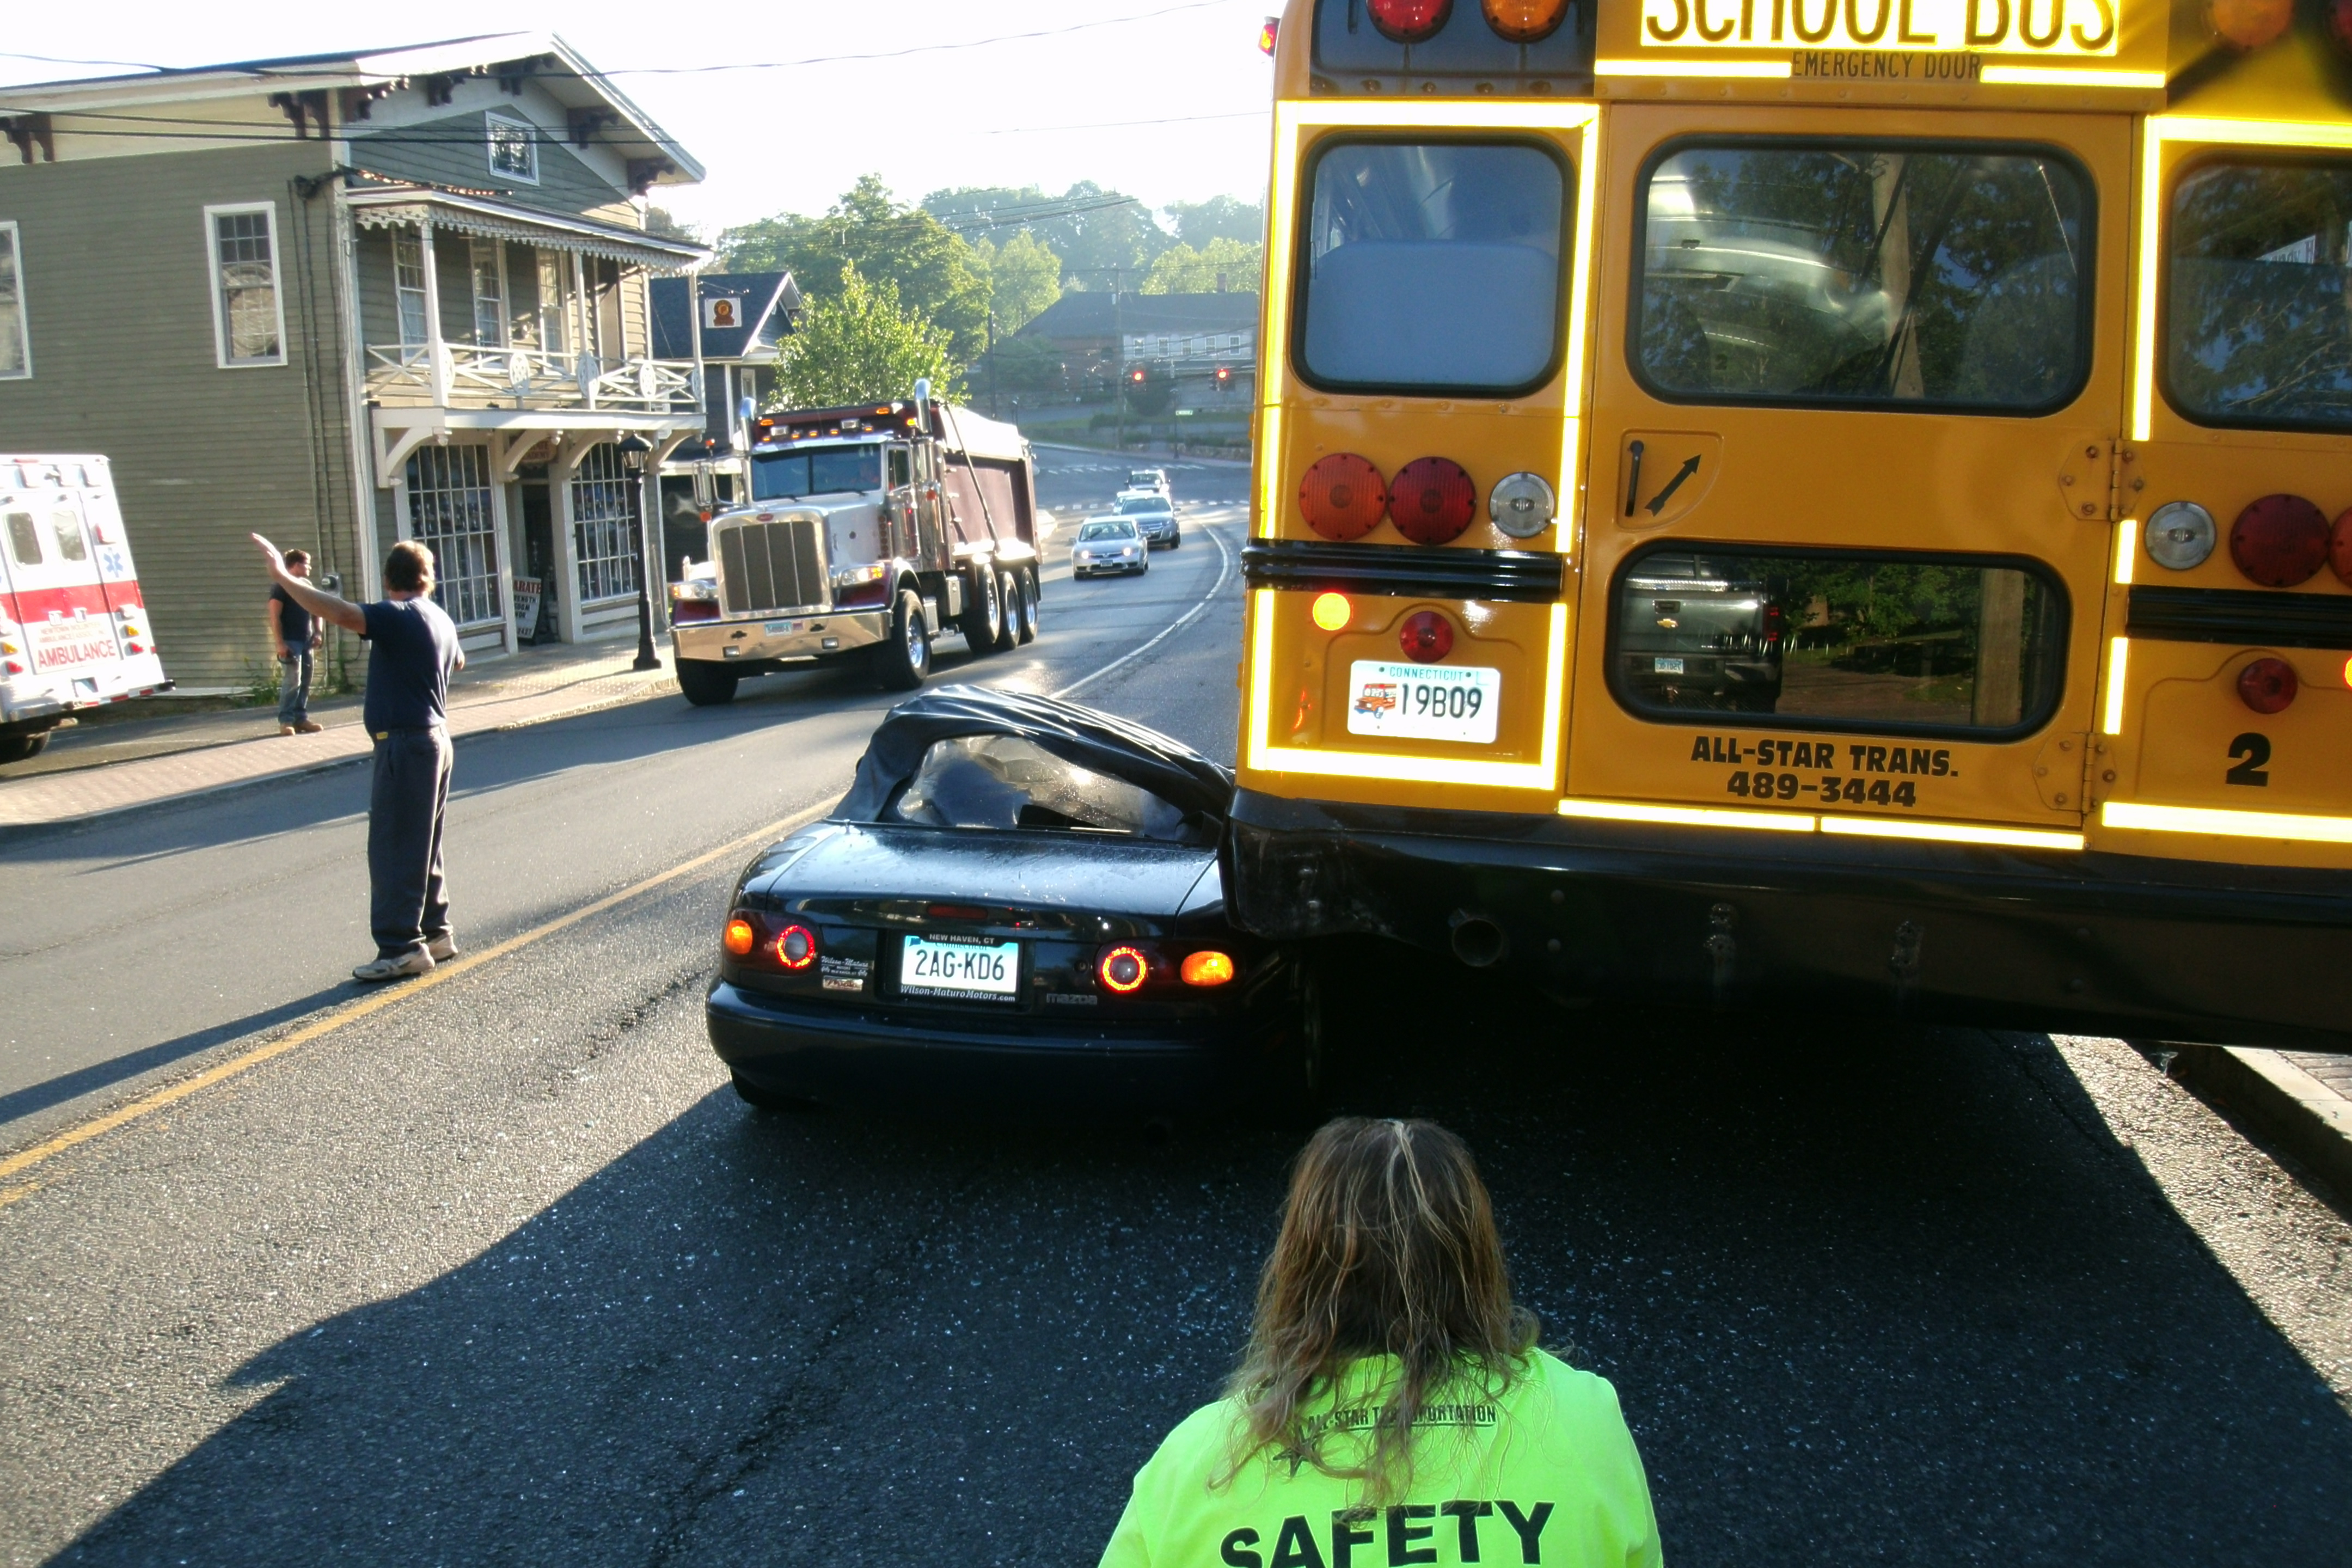 Sports Car Hits Parked School Bus In Sandy Hook Center | The Newtown Bee